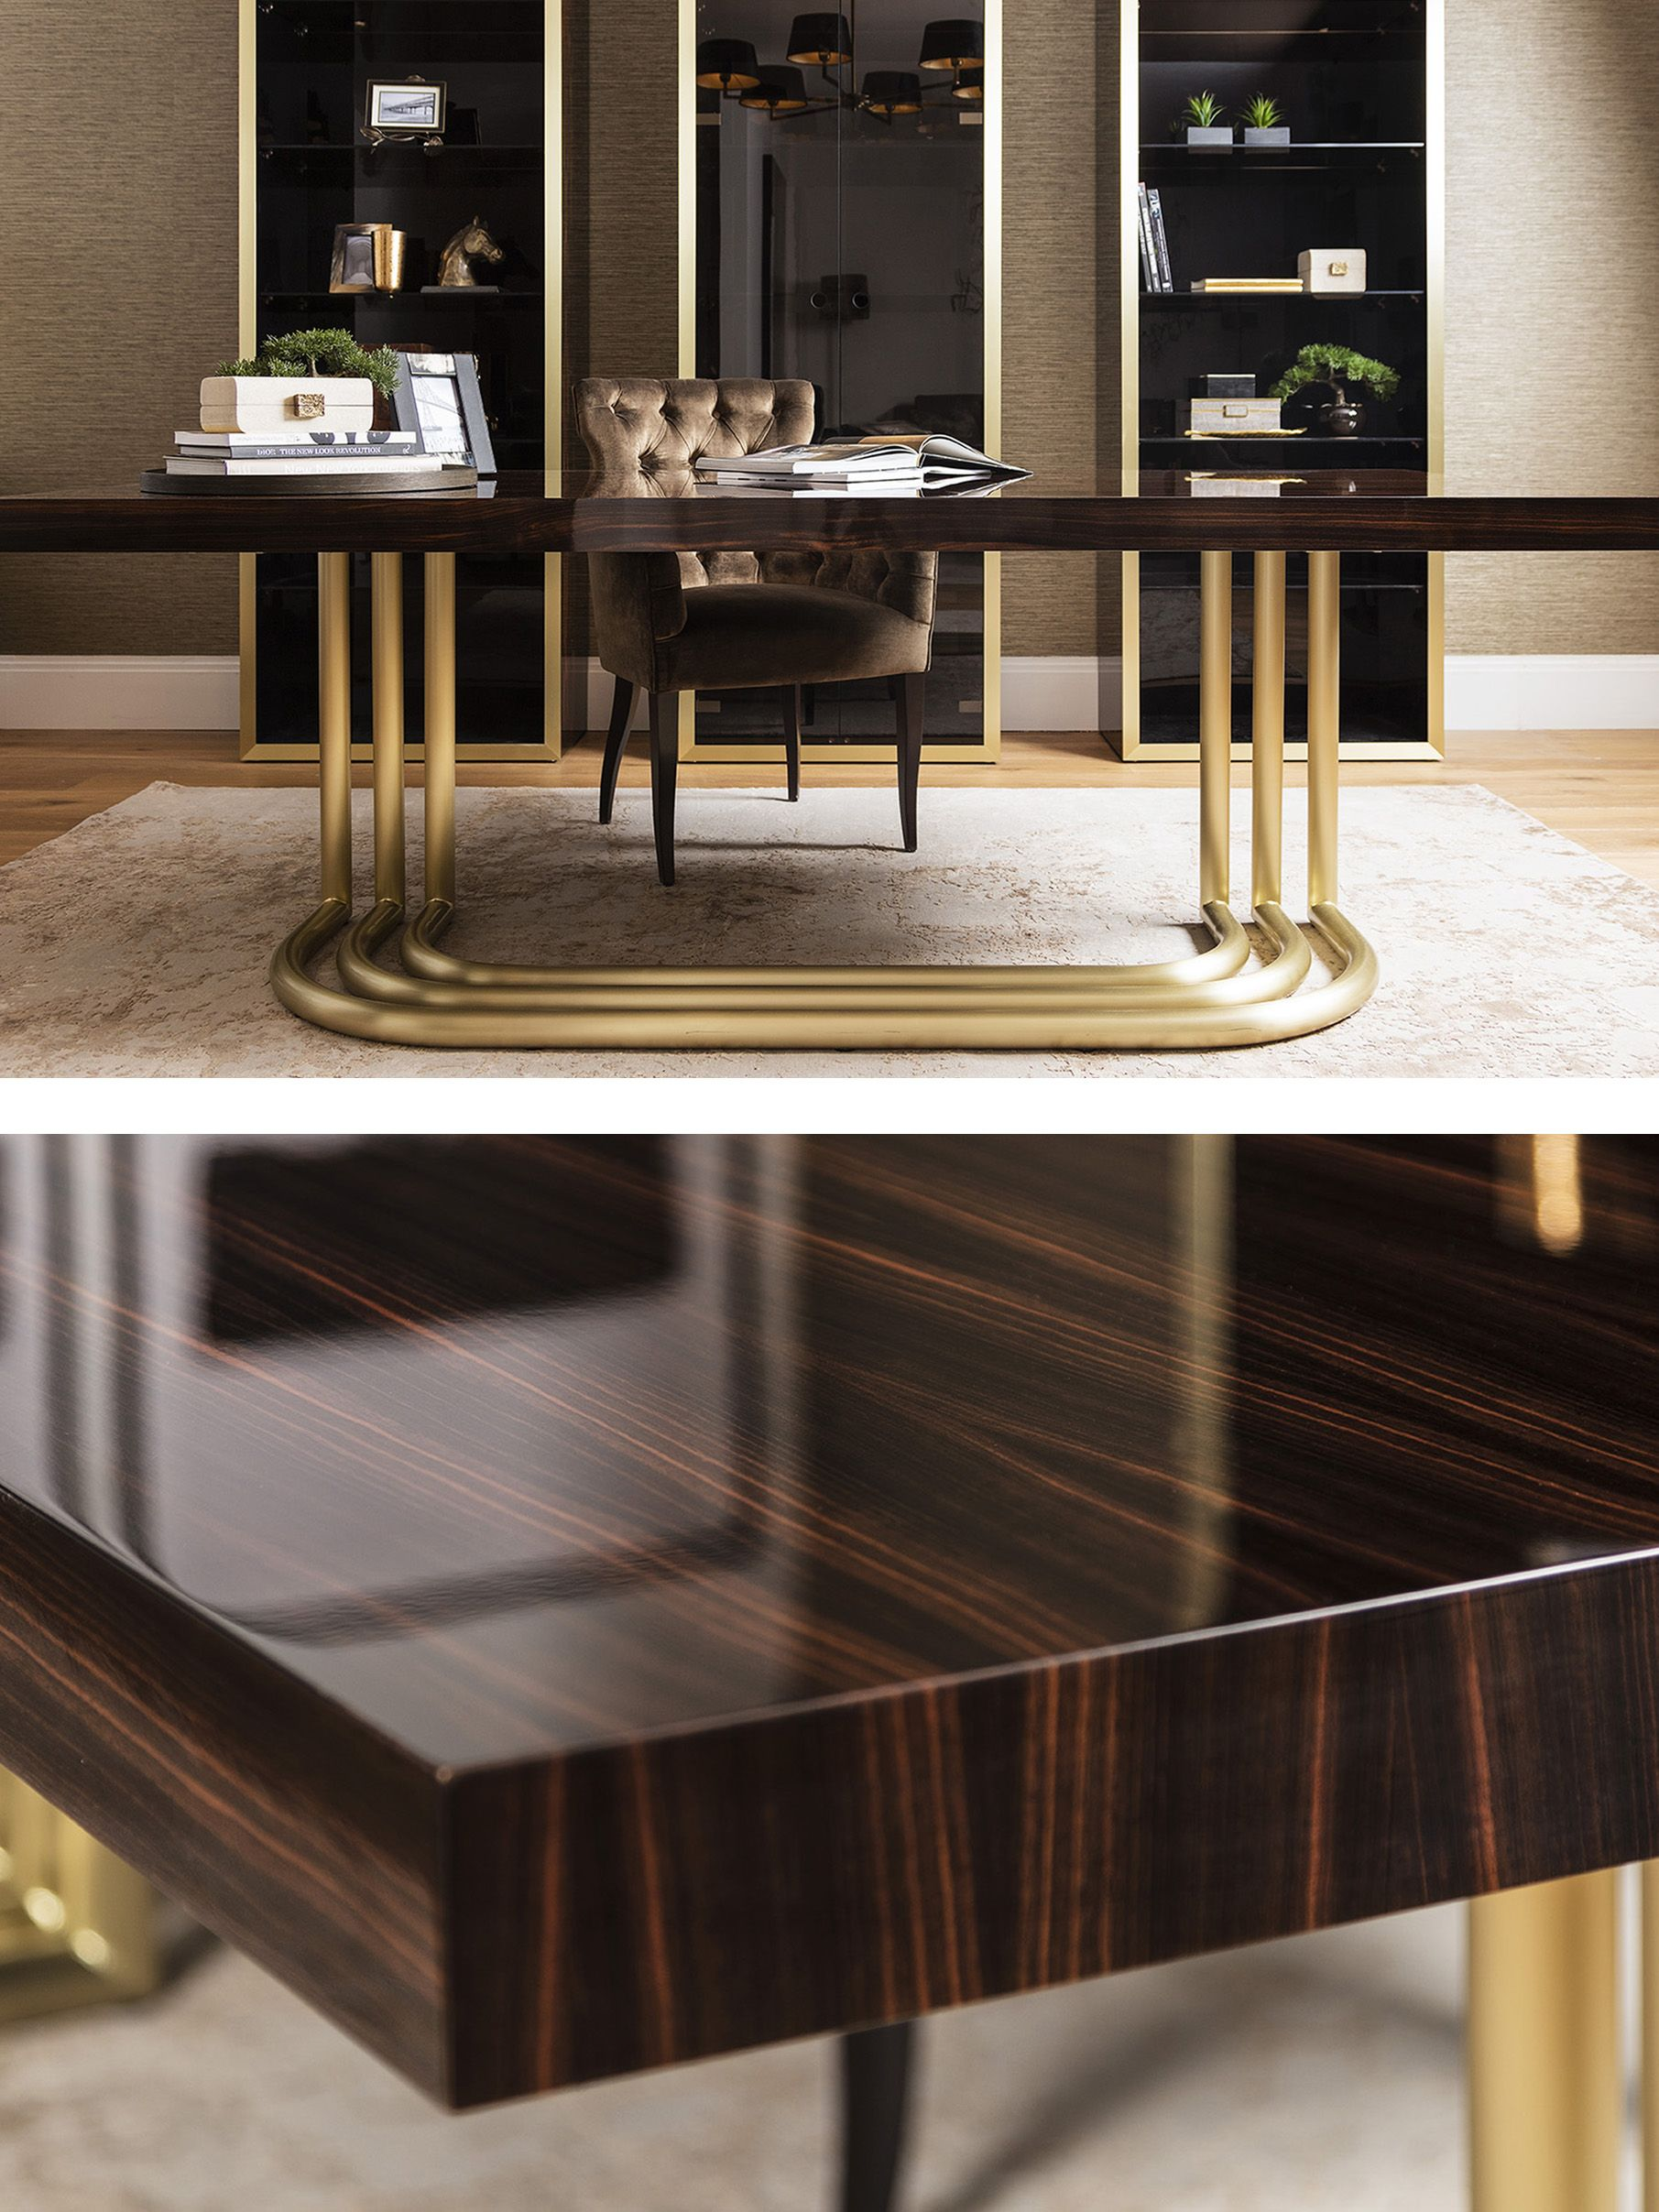 WILLIAM LUXURY HOME OFFICE DESK. A statement desk with a ...